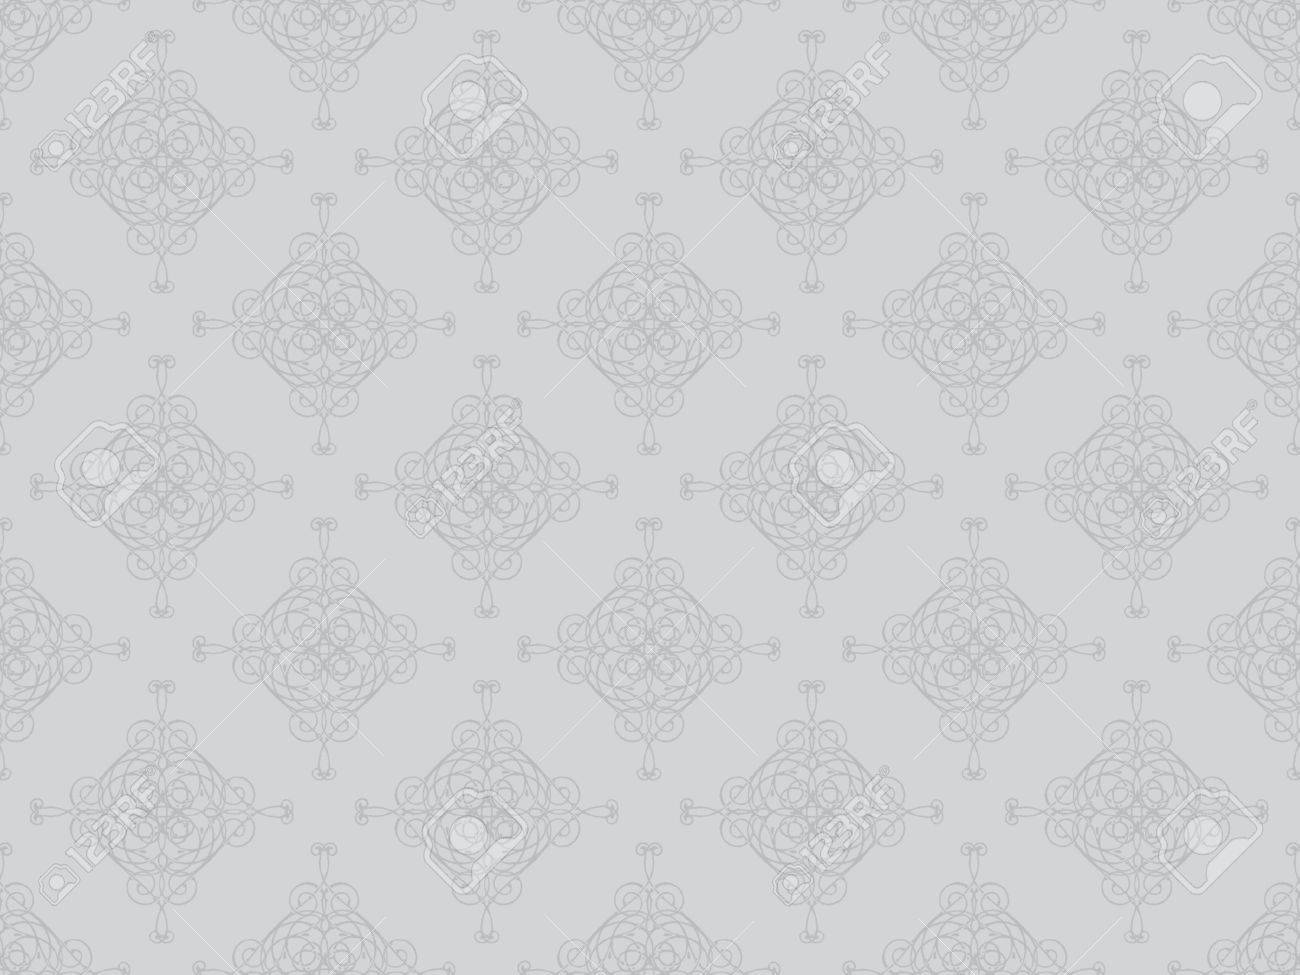 Grey damask seamless wallpaper pattern Stock Photo - 8802096